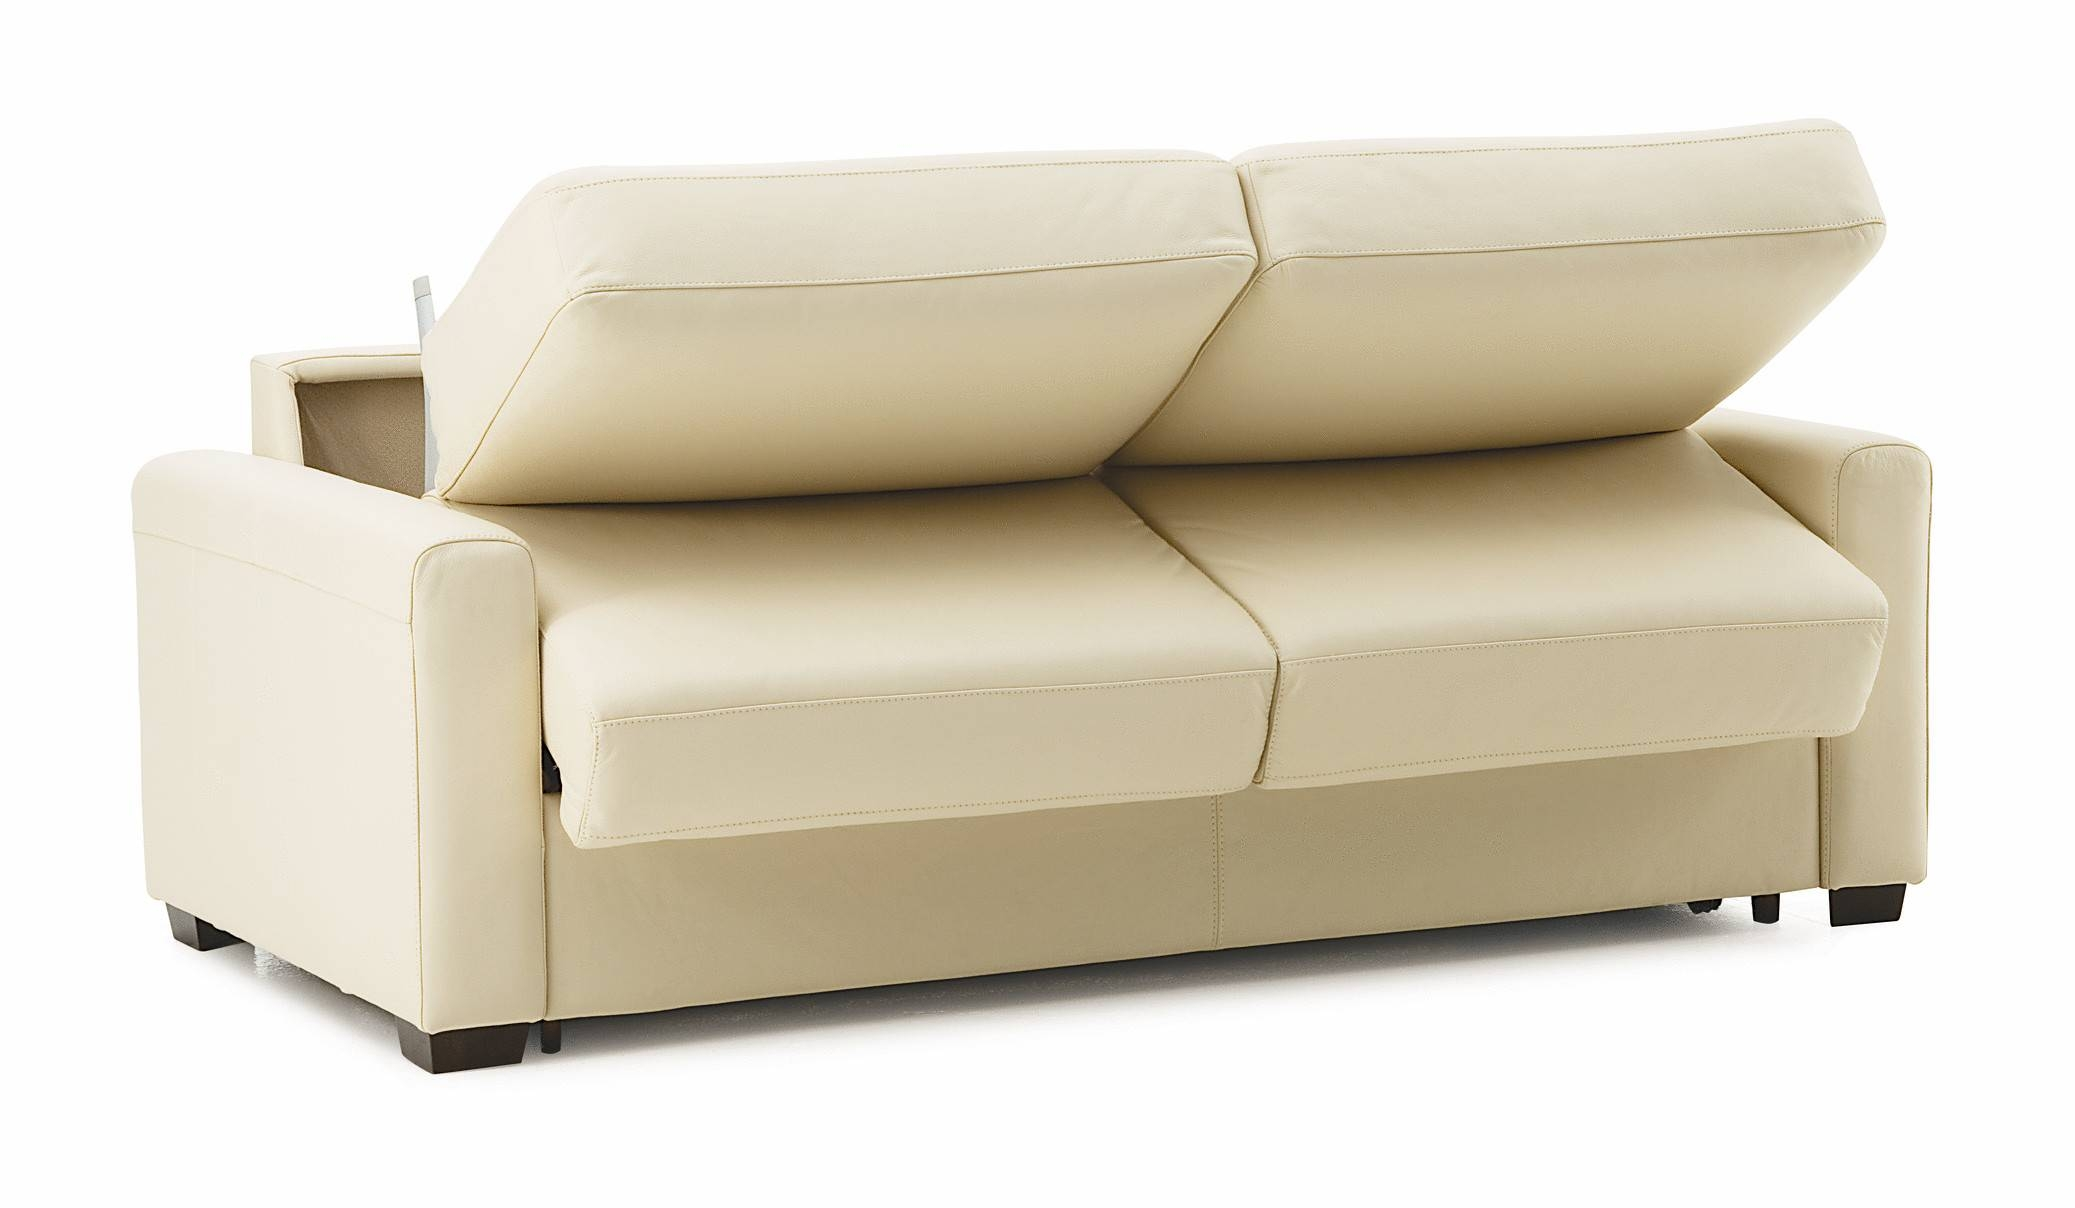 Comfortable Sofa Sleeper And Comfortable Sofa Bed › Most in Most Comfortable Sofabed (Image 6 of 30)